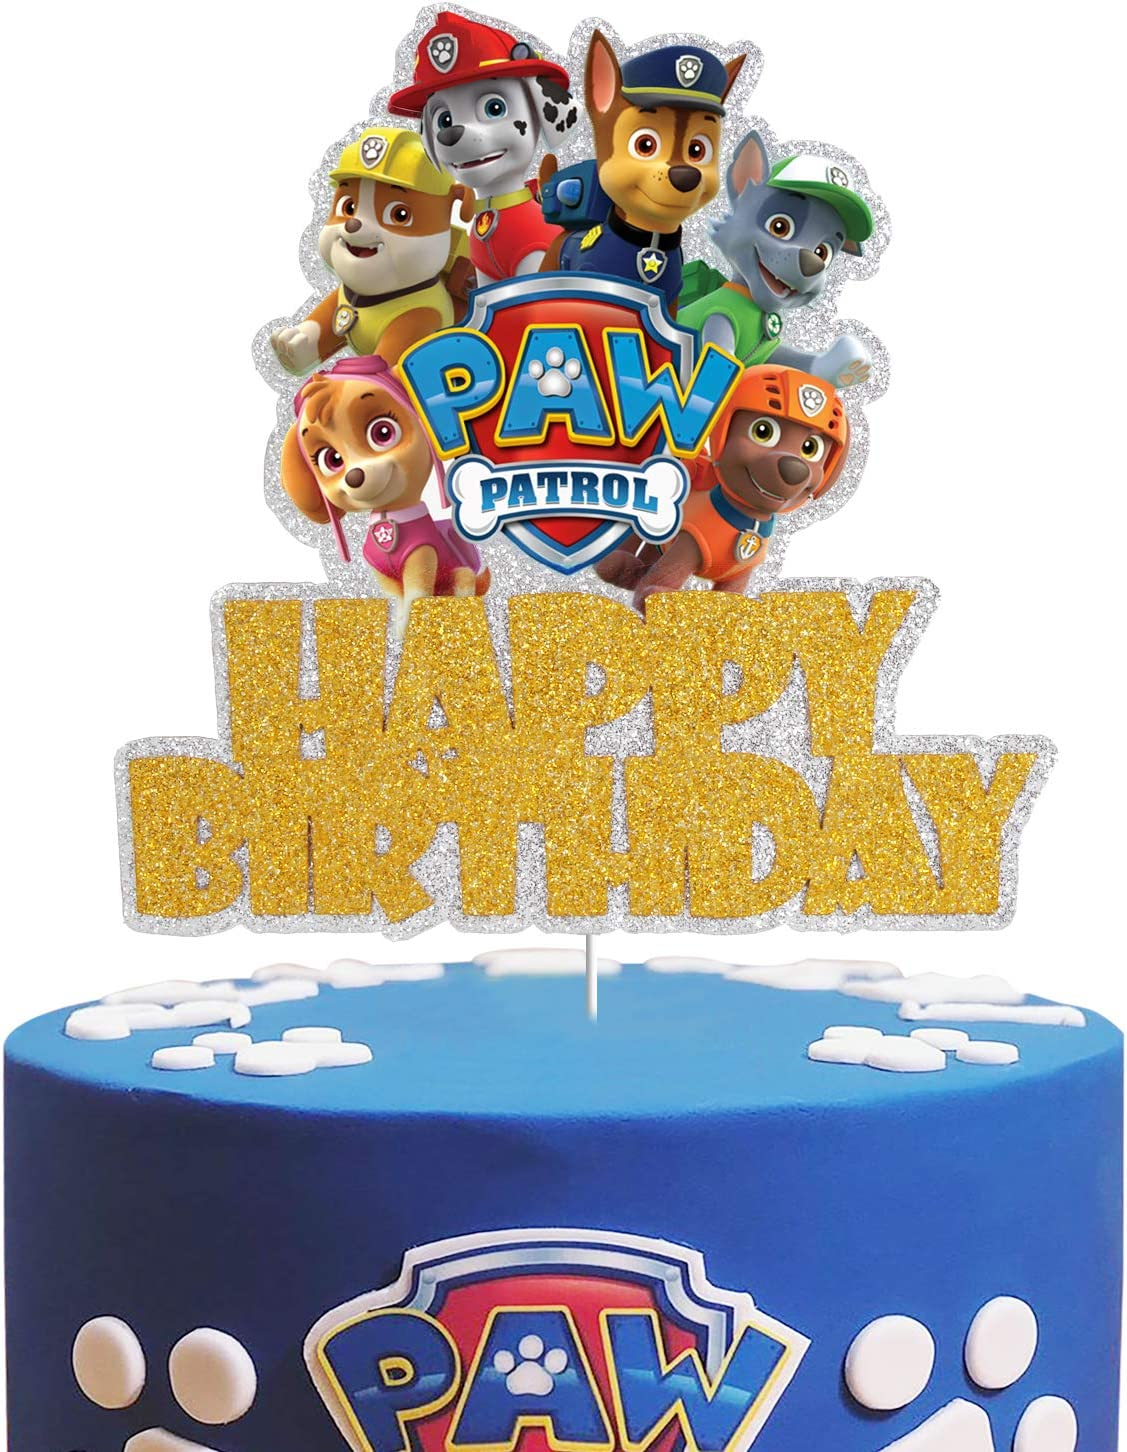 Dog Paw Patrol Happy Birrthday Cake Topper - Claw Dog Patrol Party Cake Decor,Children's Birthday Baby Shower Party Supplies